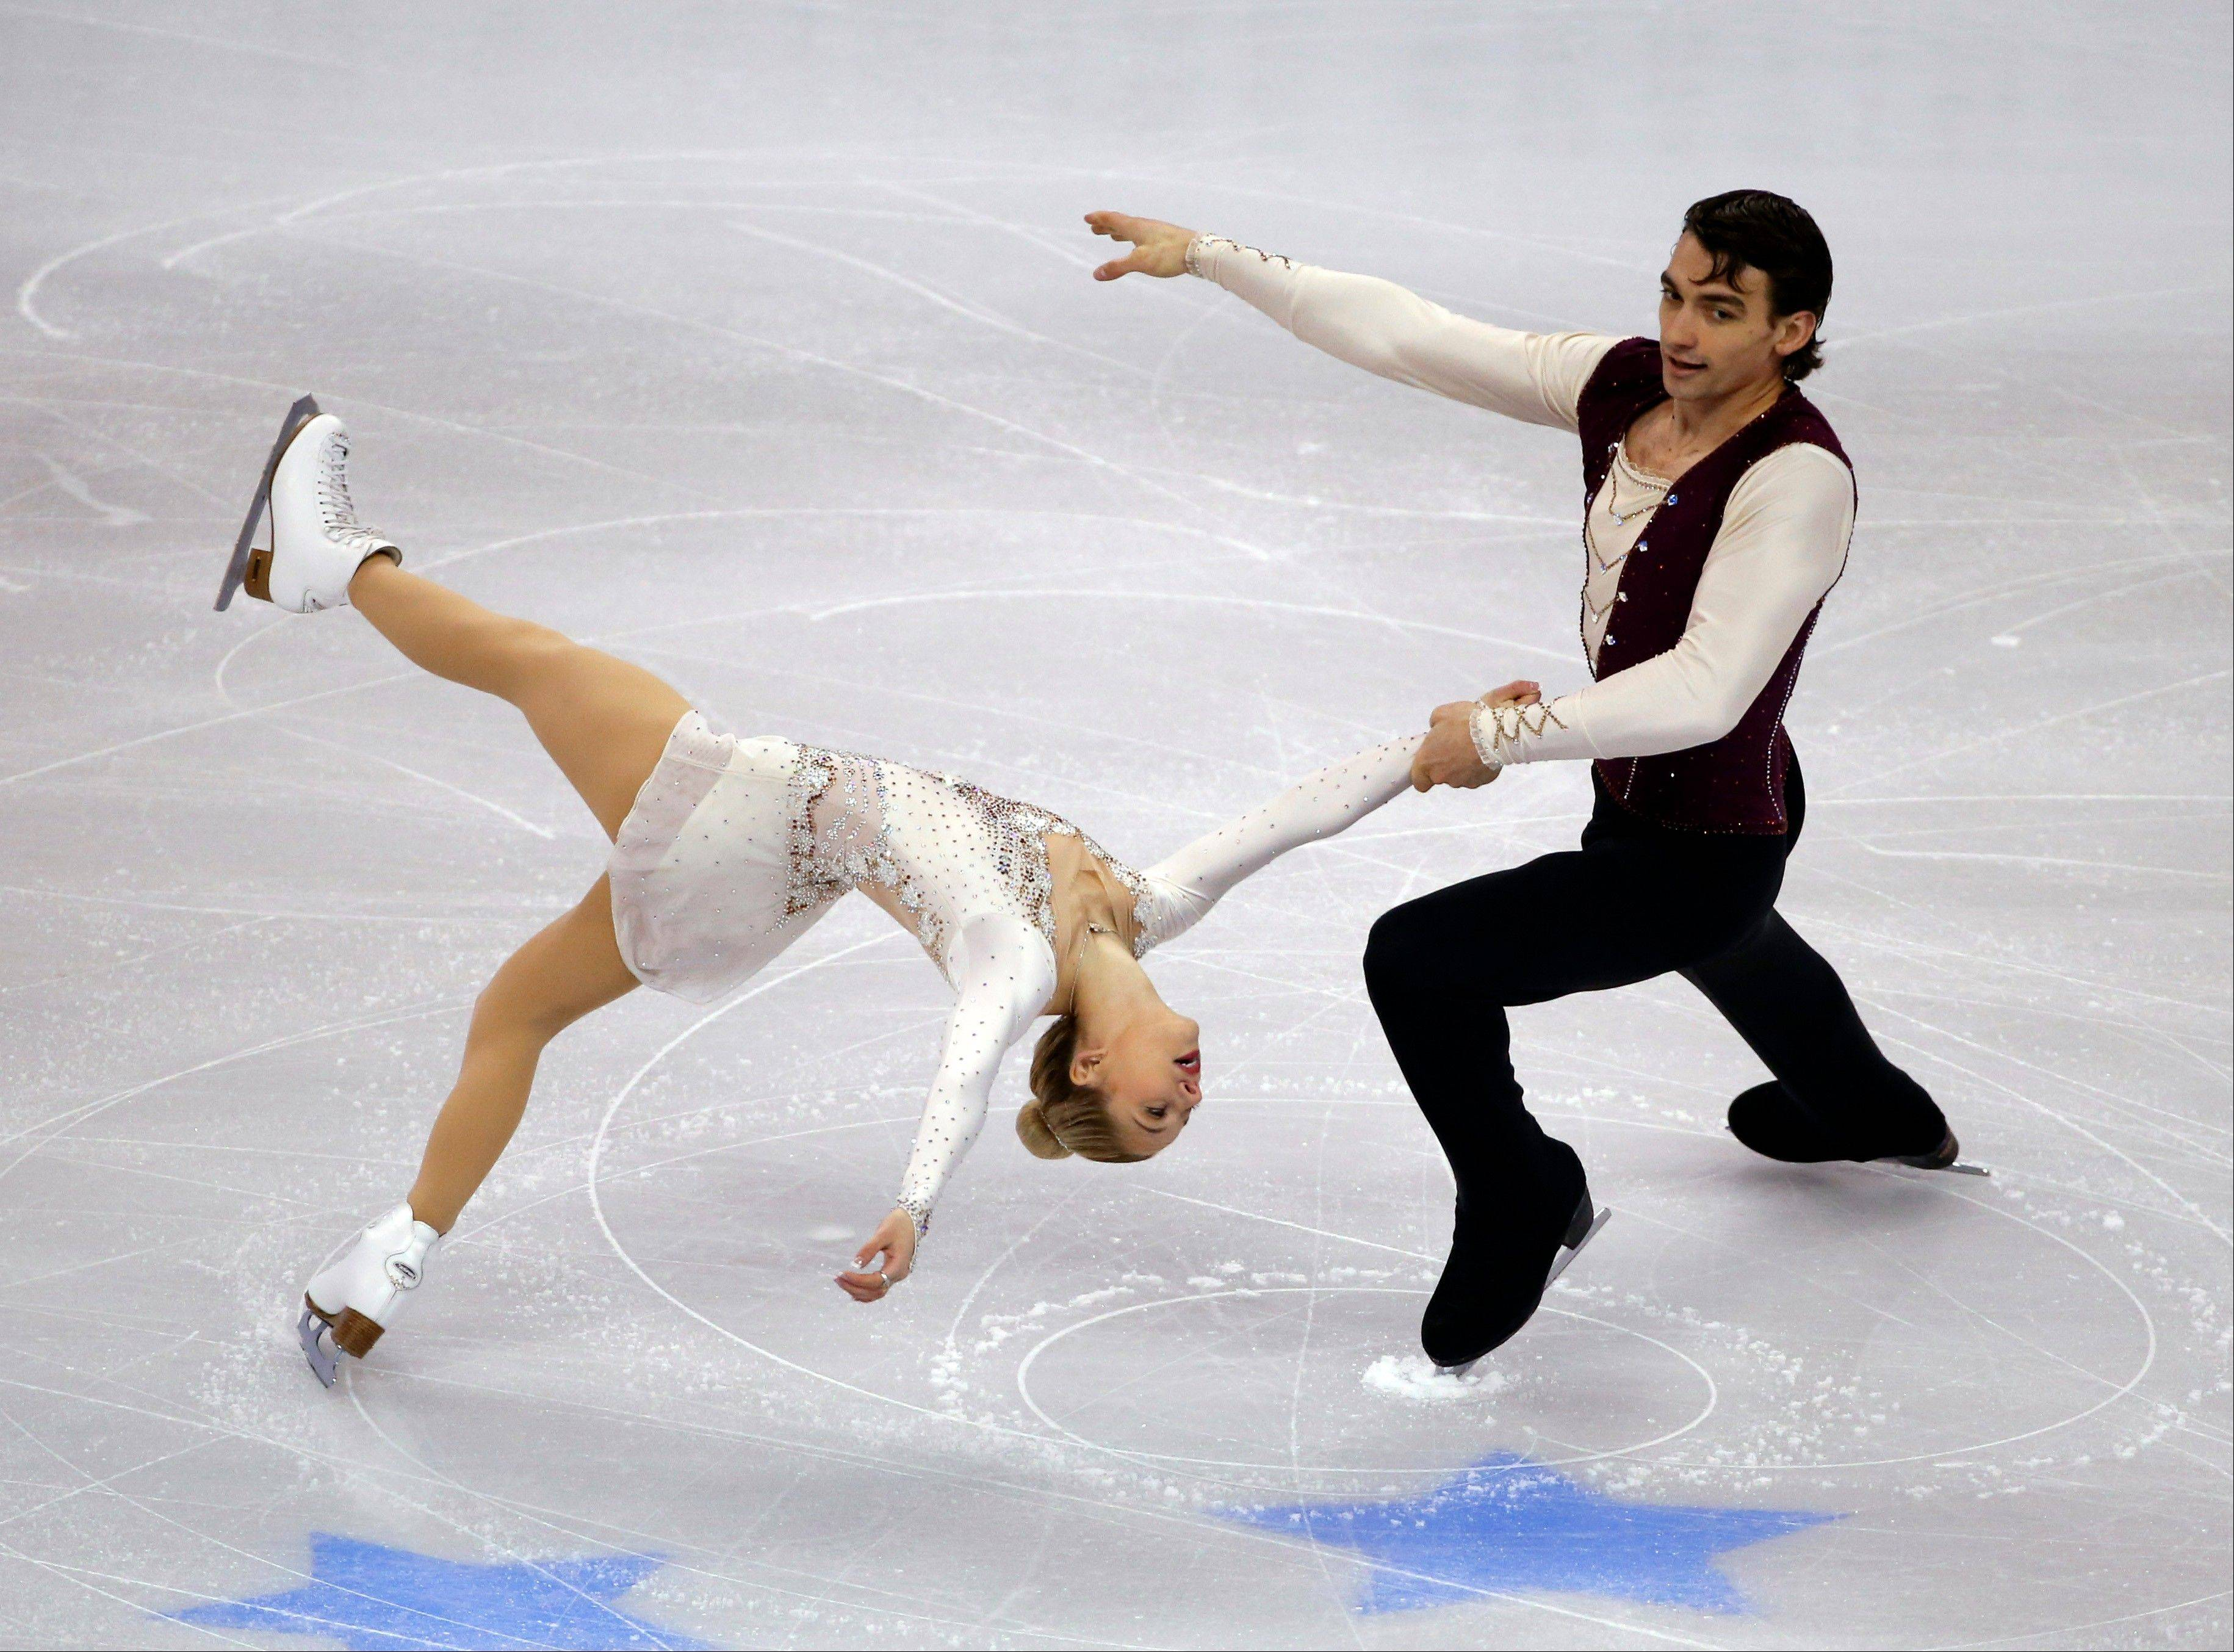 Alexa Scimeca of Addison and Chris Knierim finished fourth overall in the pairs competition at the U.S. Figure Skating Championships in Boston.